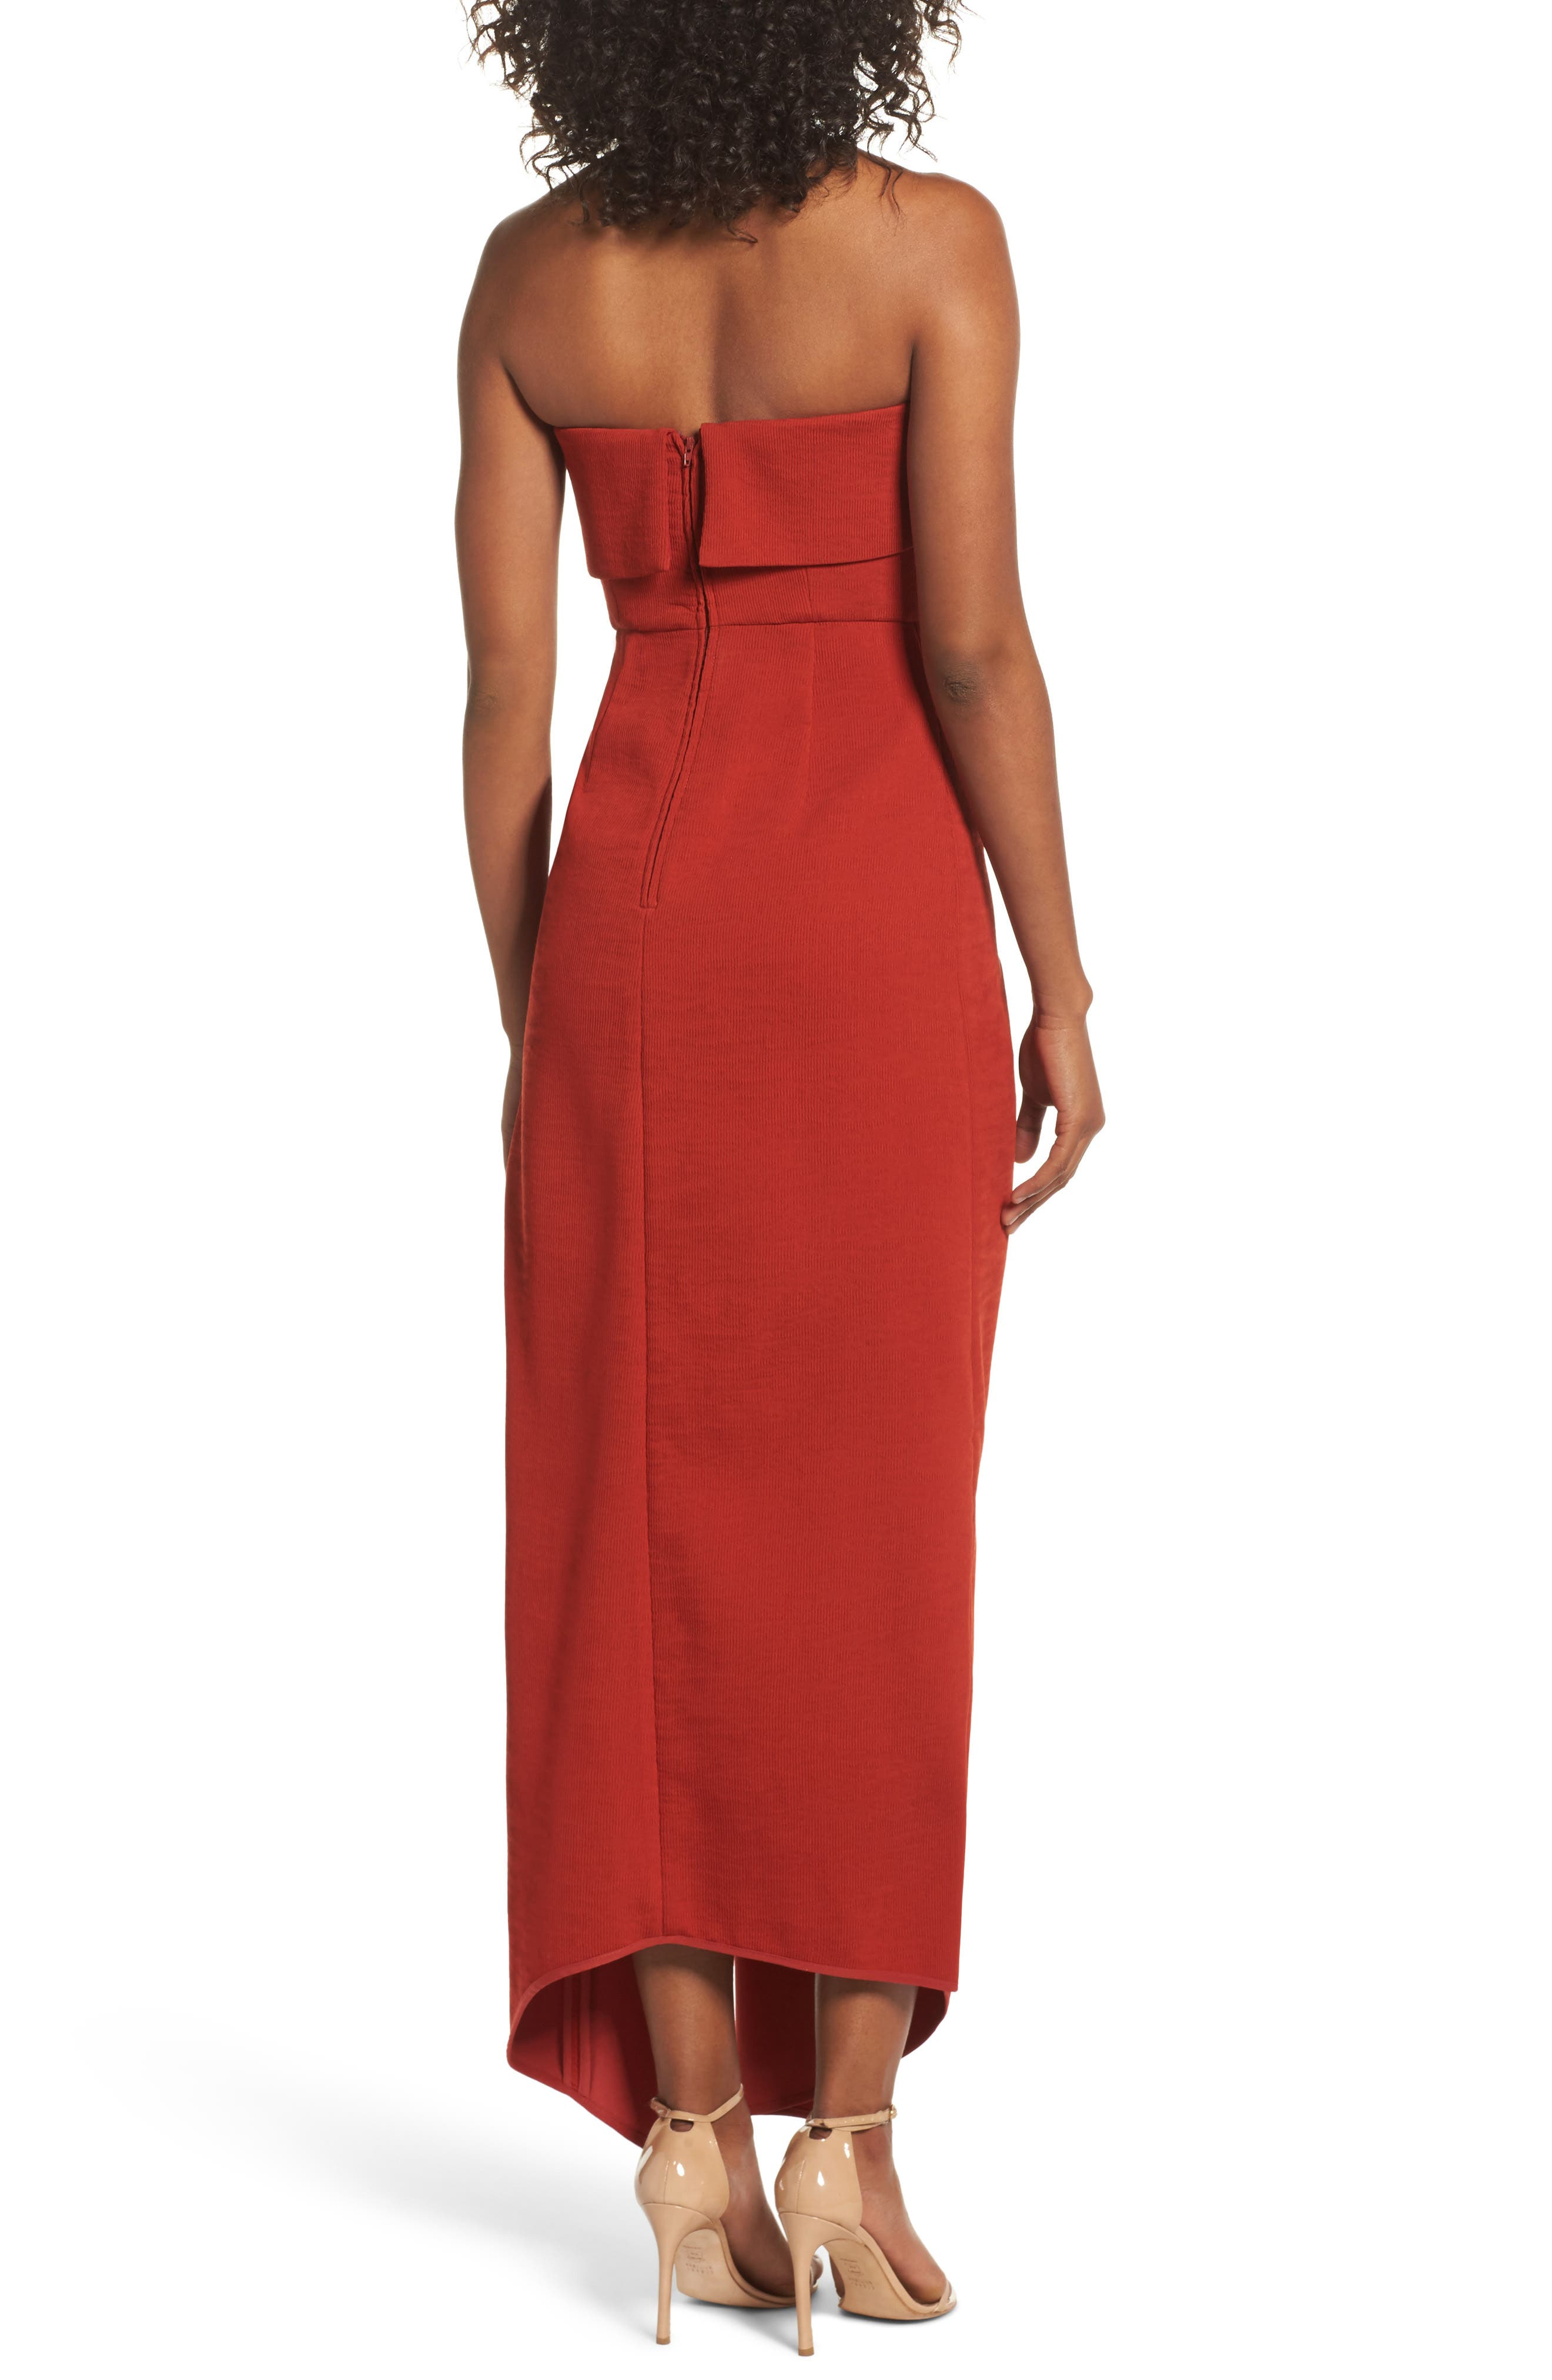 Fluidity Strapless Maxi Dress,                             Alternate thumbnail 2, color,                             602